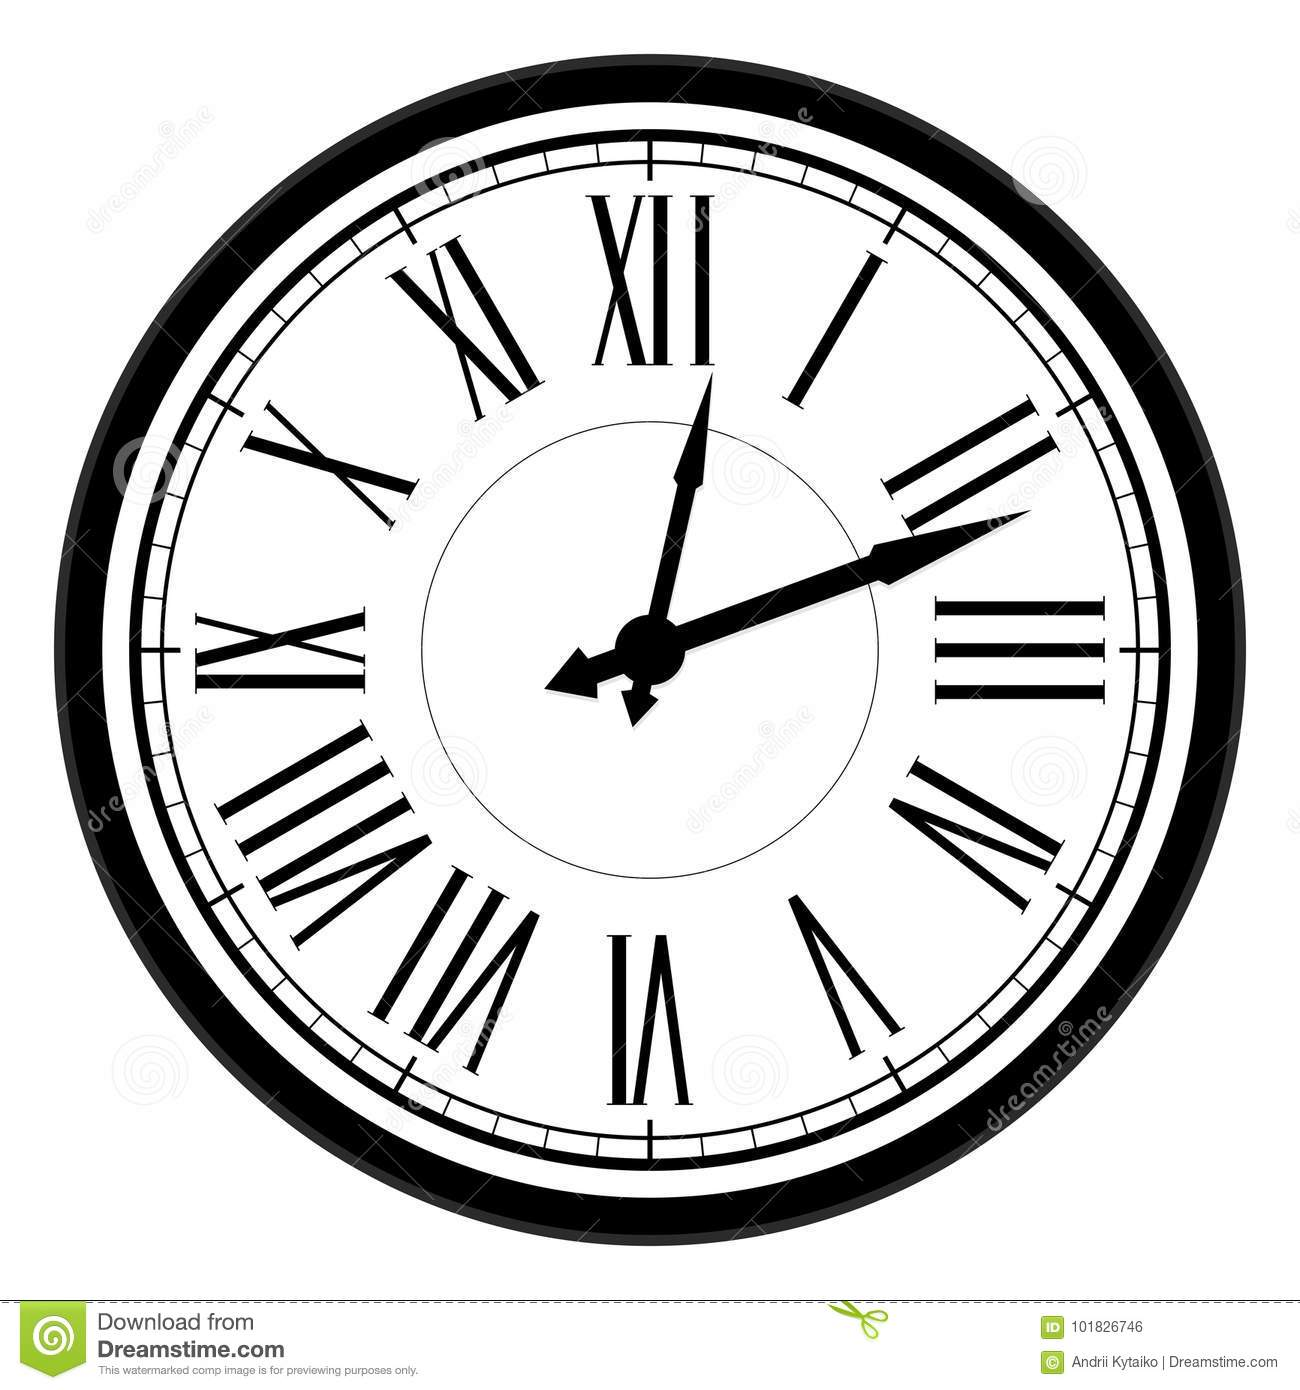 Vintage Dial Clock With Roman Numerals Stock Vector